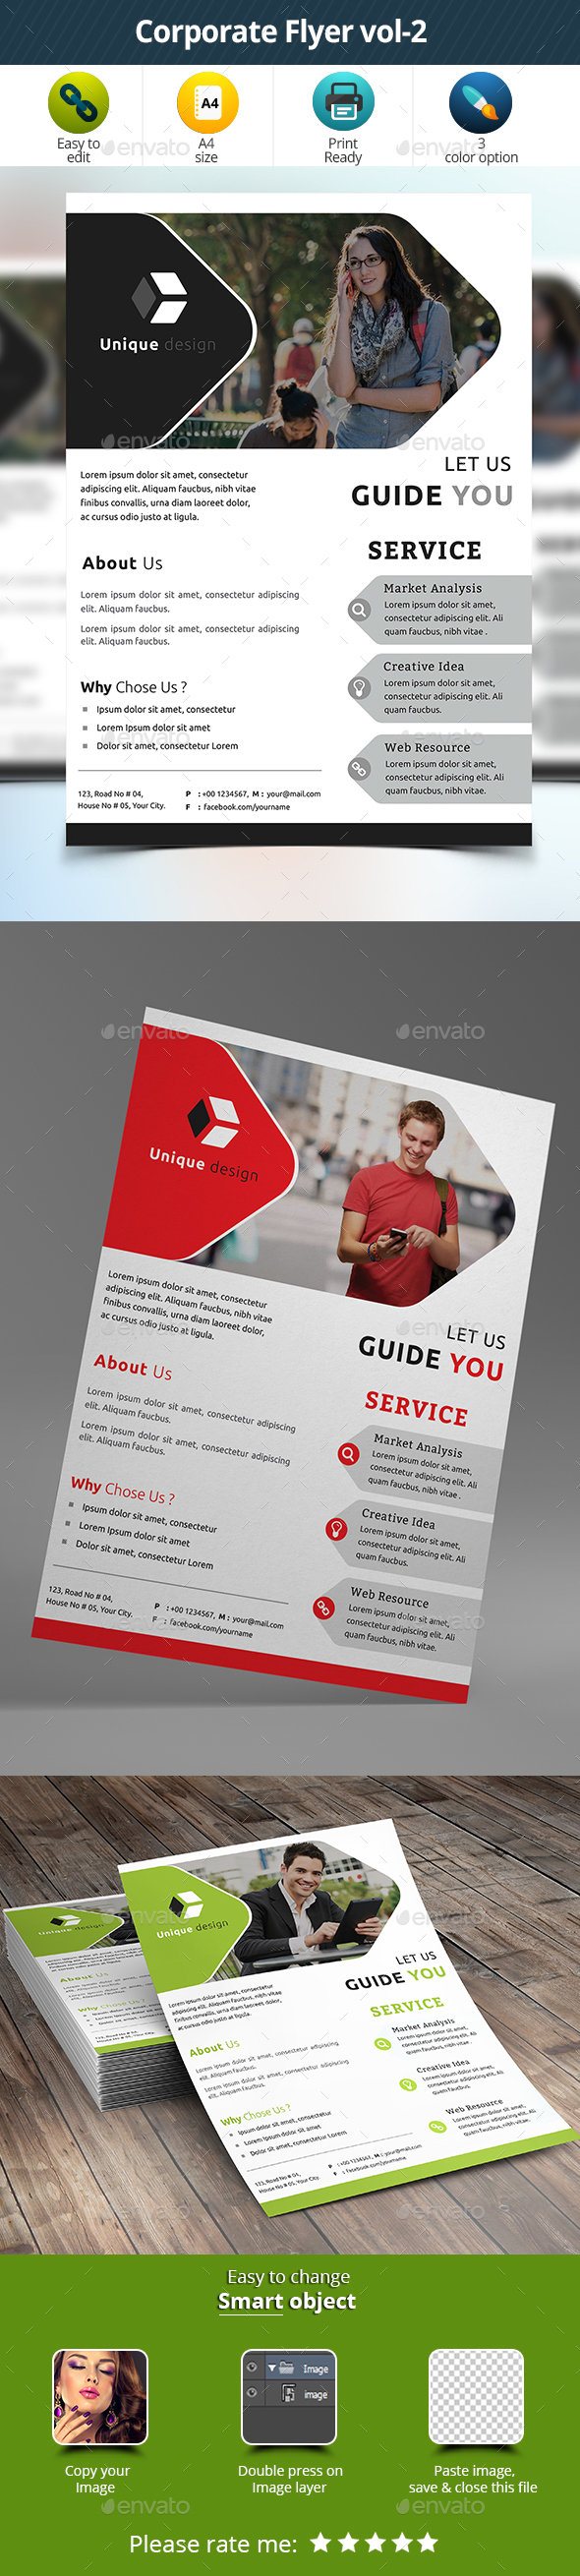 Corporate Flyer vol-2 - Corporate Flyers